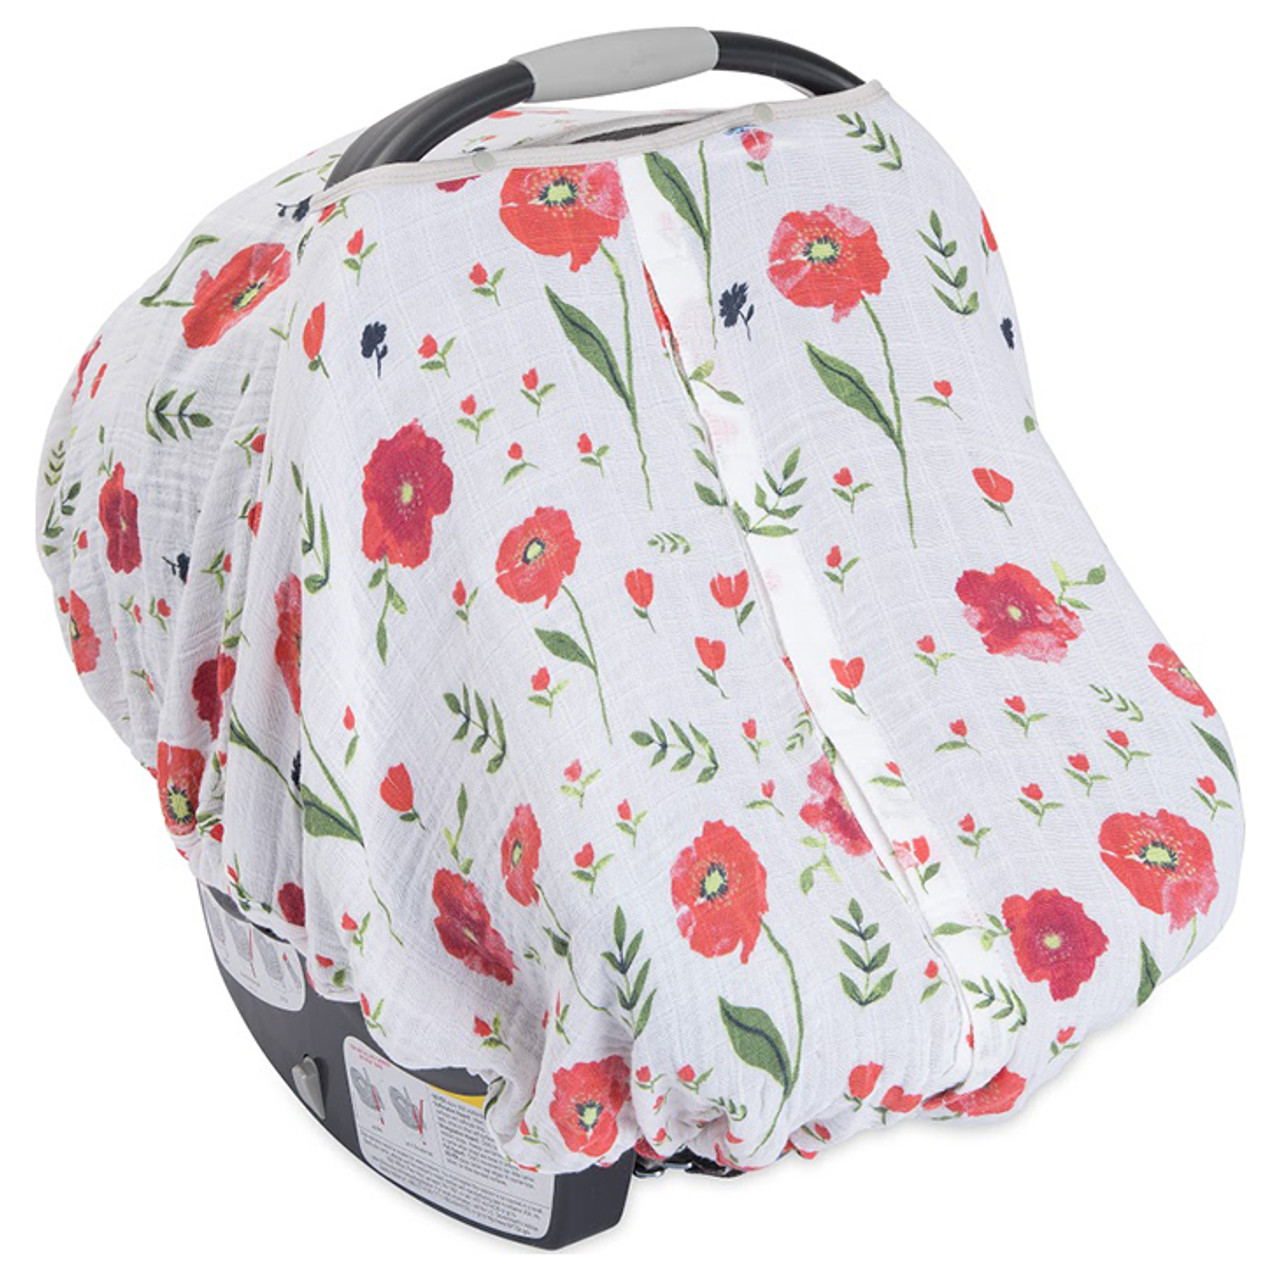 sc 1 st  SpearmintLOVE & Cotton Muslin Car Seat Canopy Summer Poppy - Spearmint Ventures LLC